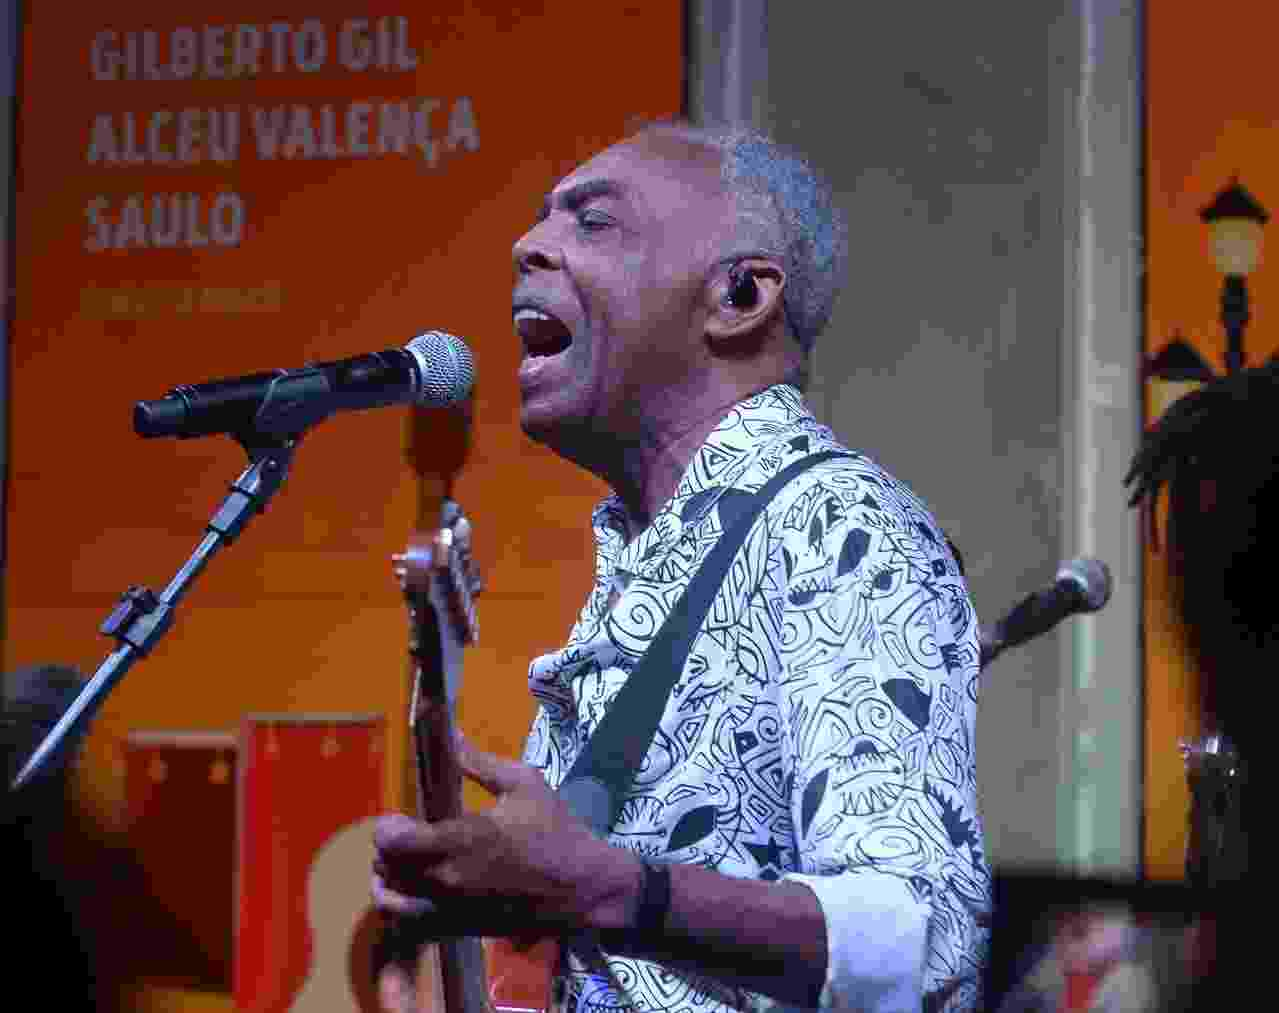 Gilberto Gil no Bar Brahma em SP - Francisco Cepeda/AgNews